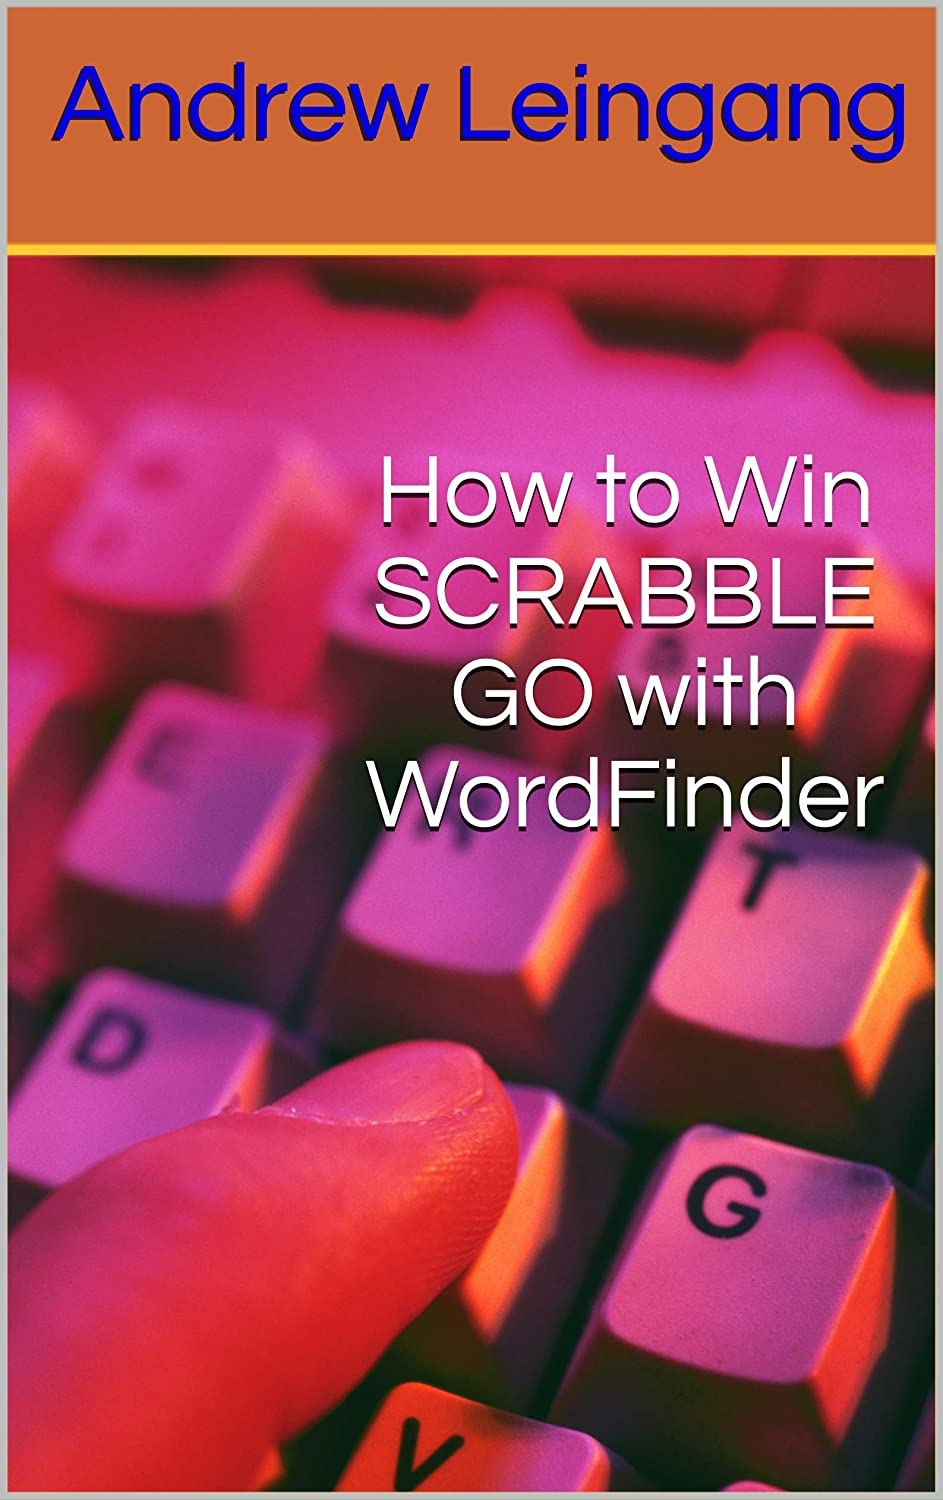 How to Win SCRABBLE GO with WordFinder (English Edition) eBook: Leingang, Andrew: Amazon.es: Tienda Kindle